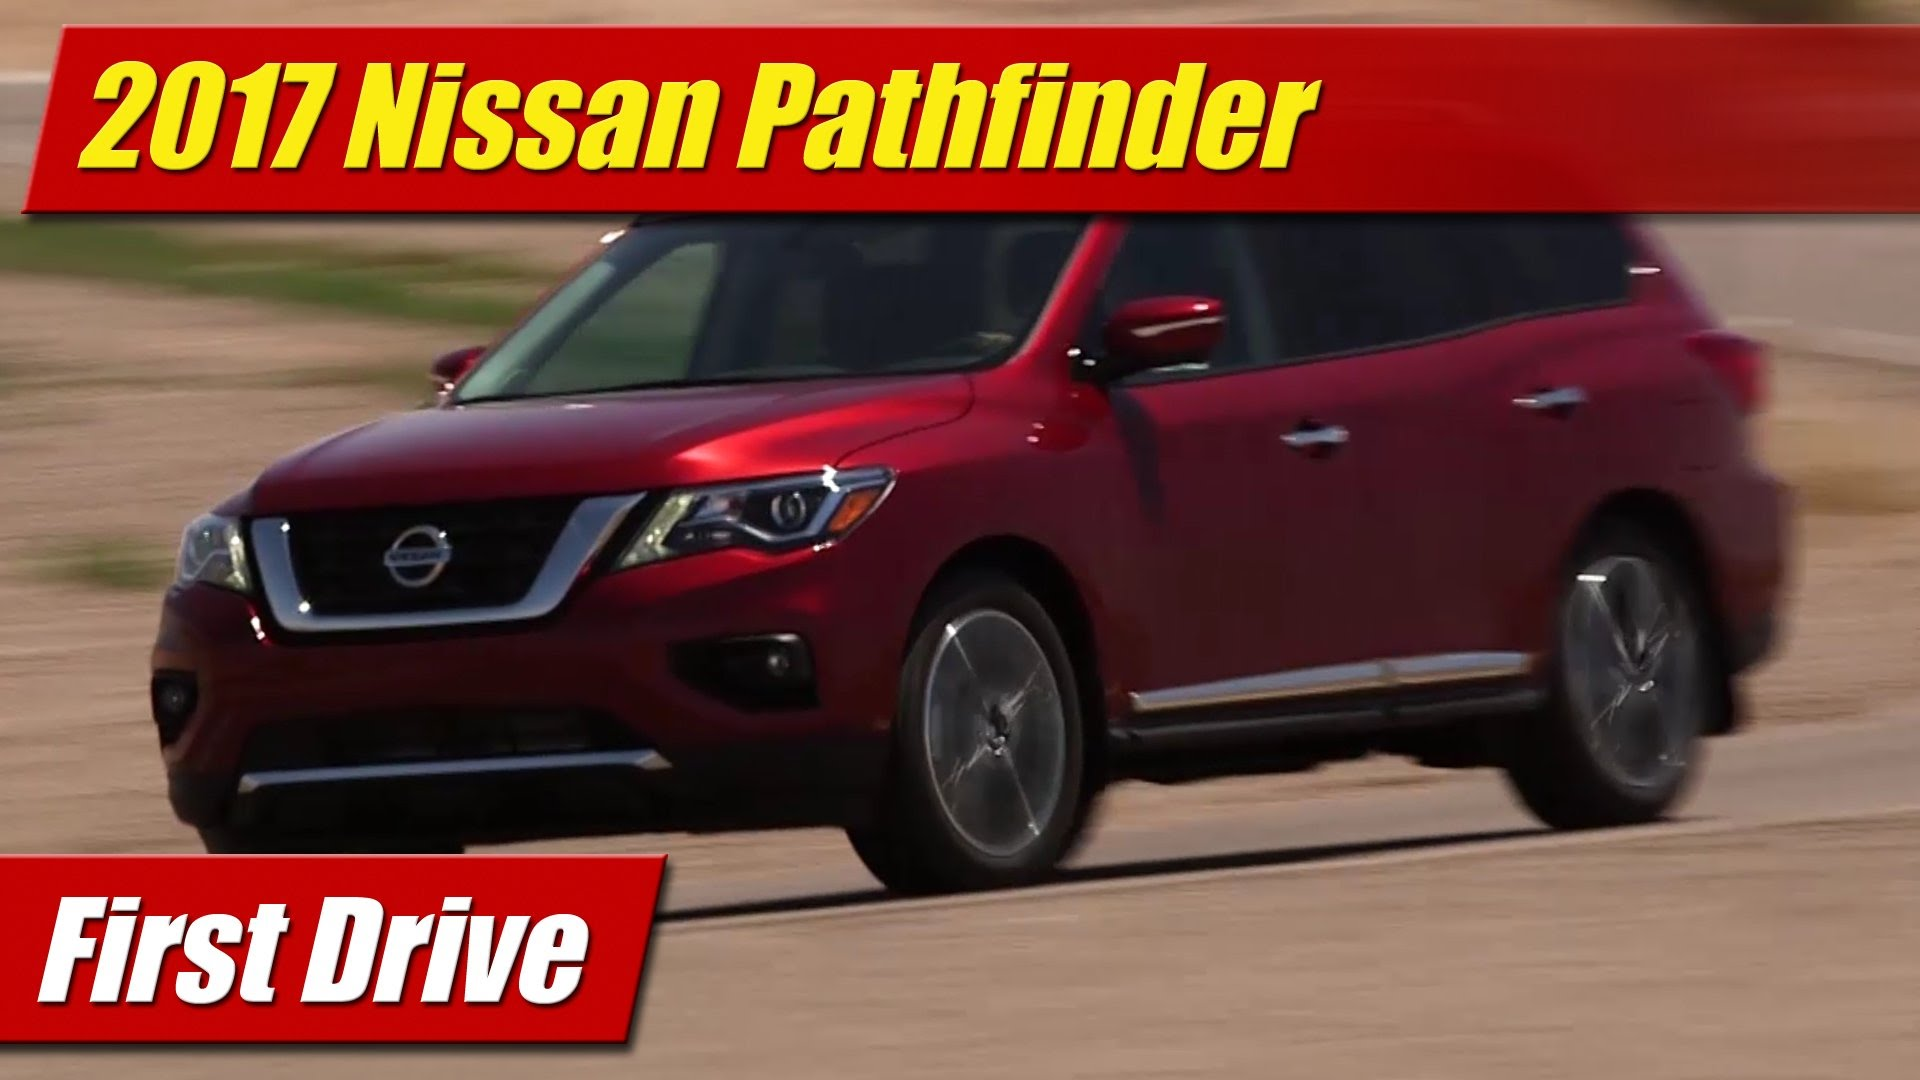 First Drive: 2017 Nissan Pathfinder